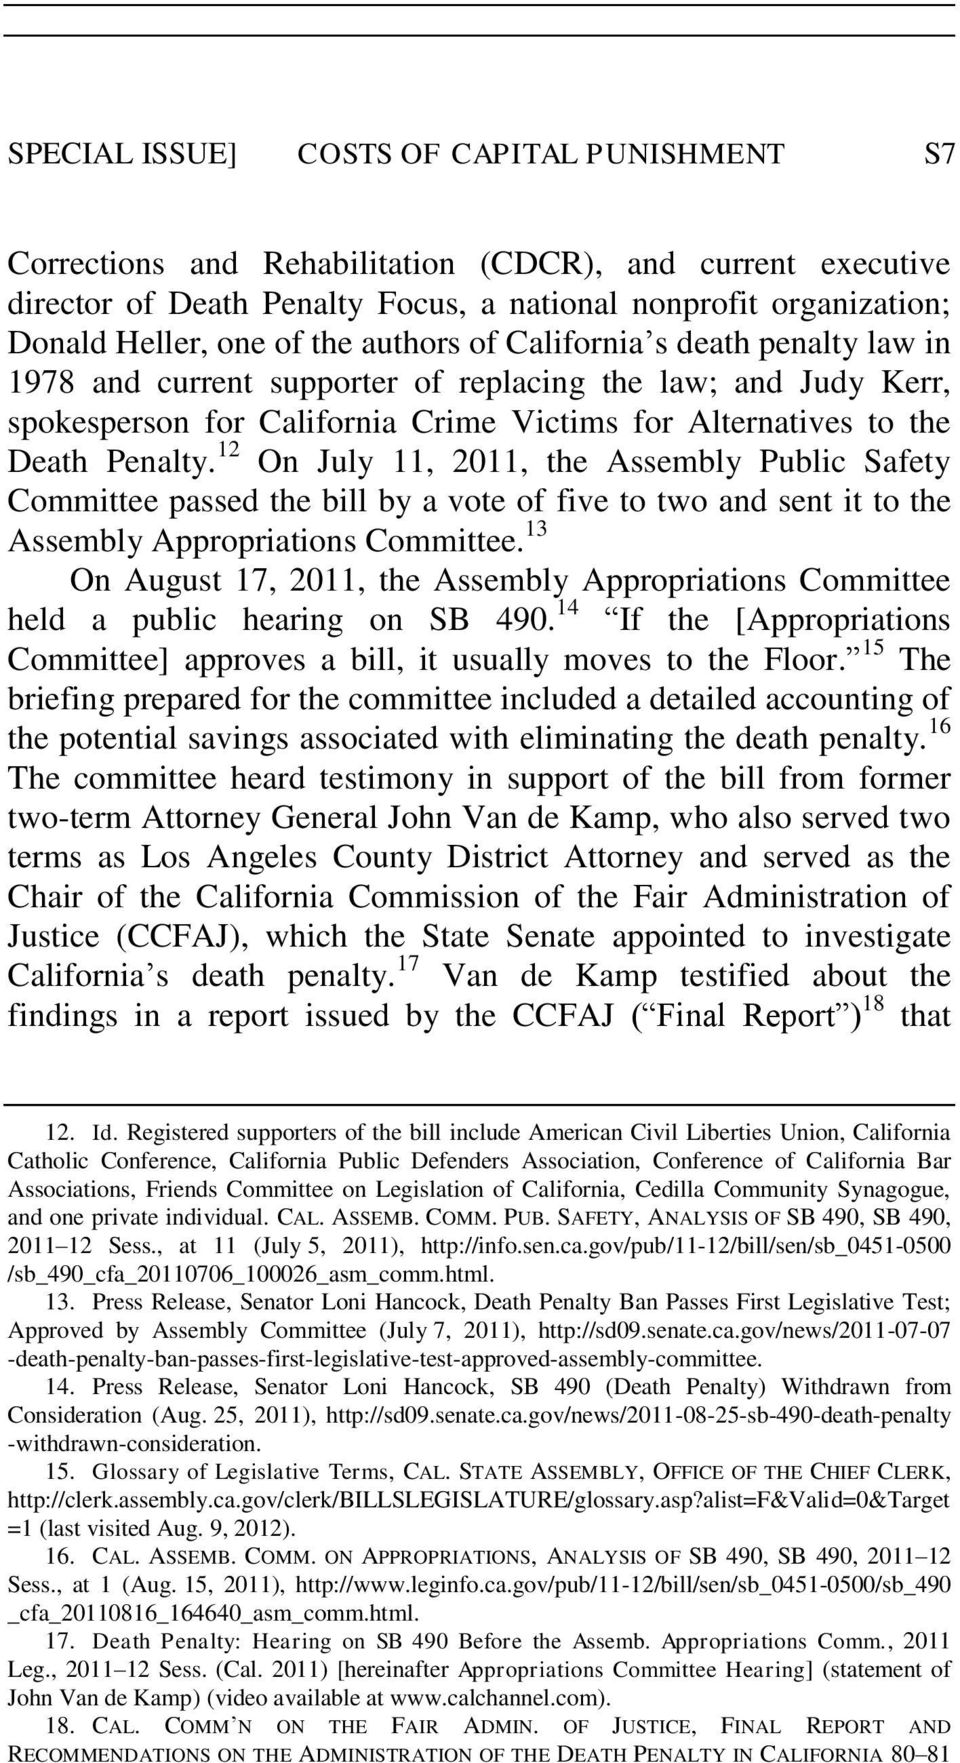 12 On July 11, 2011, the Assembly Public Safety Committee passed the bill by a vote of five to two and sent it to the Assembly Appropriations Committee.